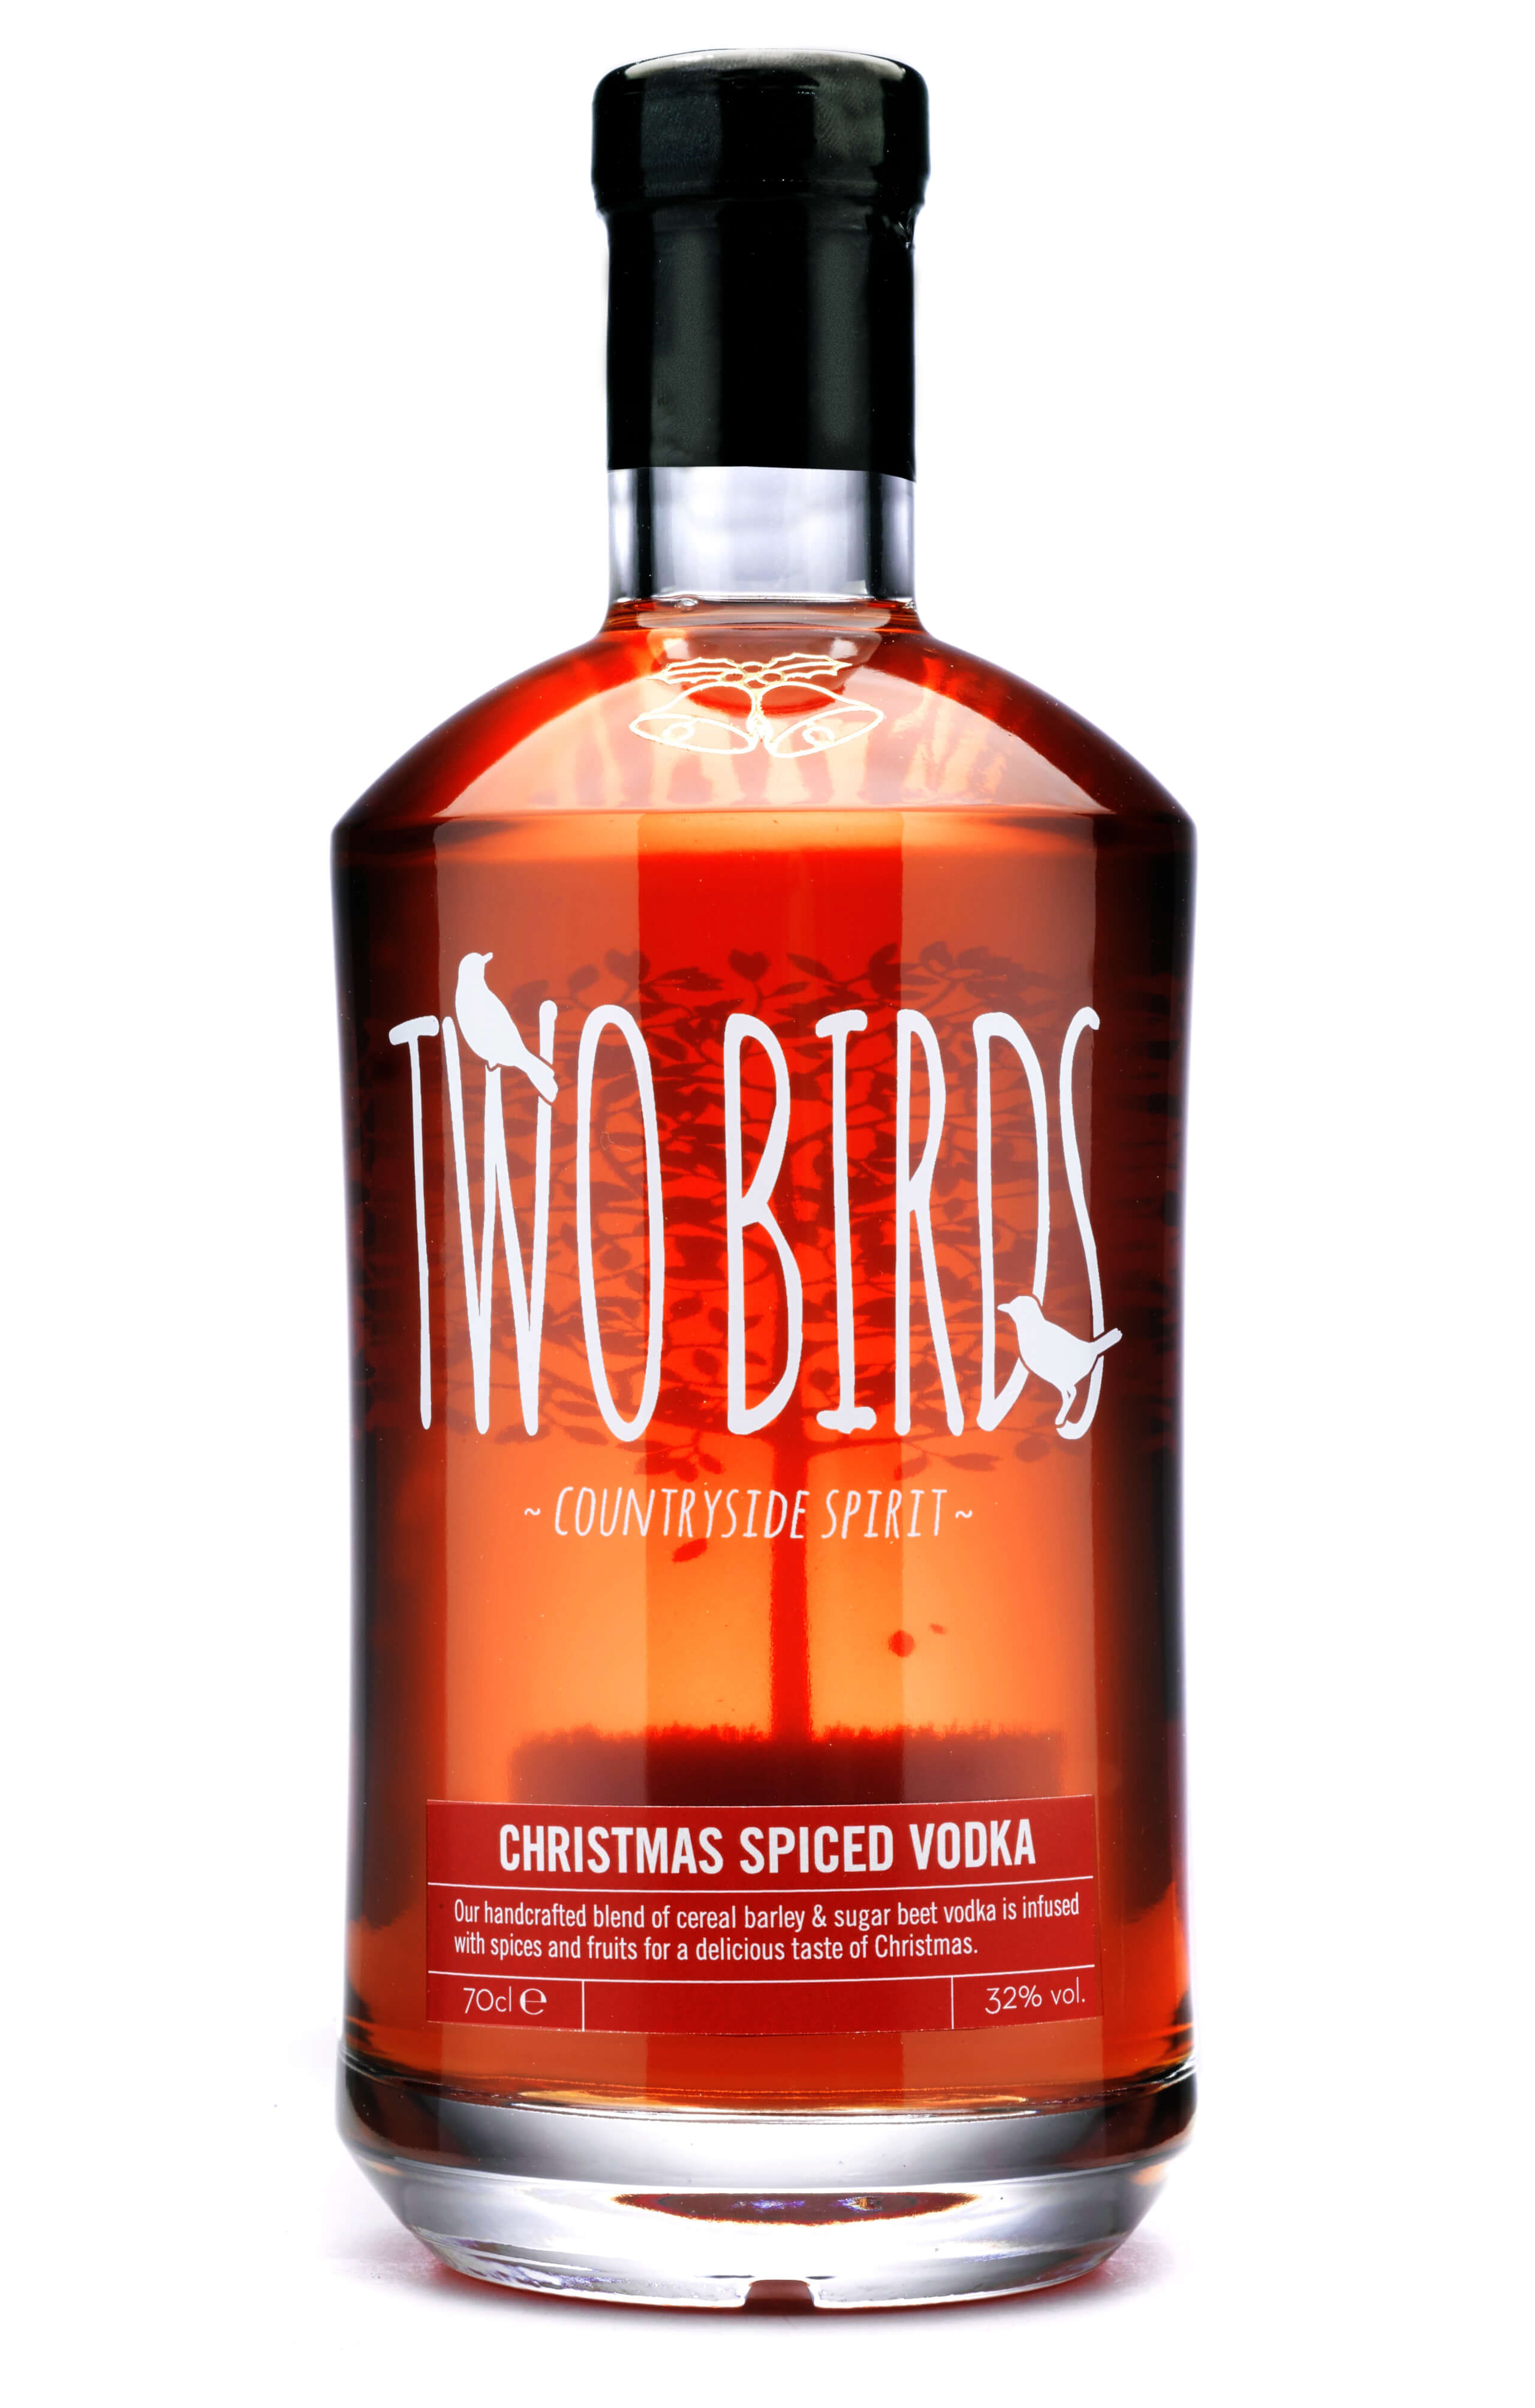 Two Birds Christmas Spiced Vodka 70cl